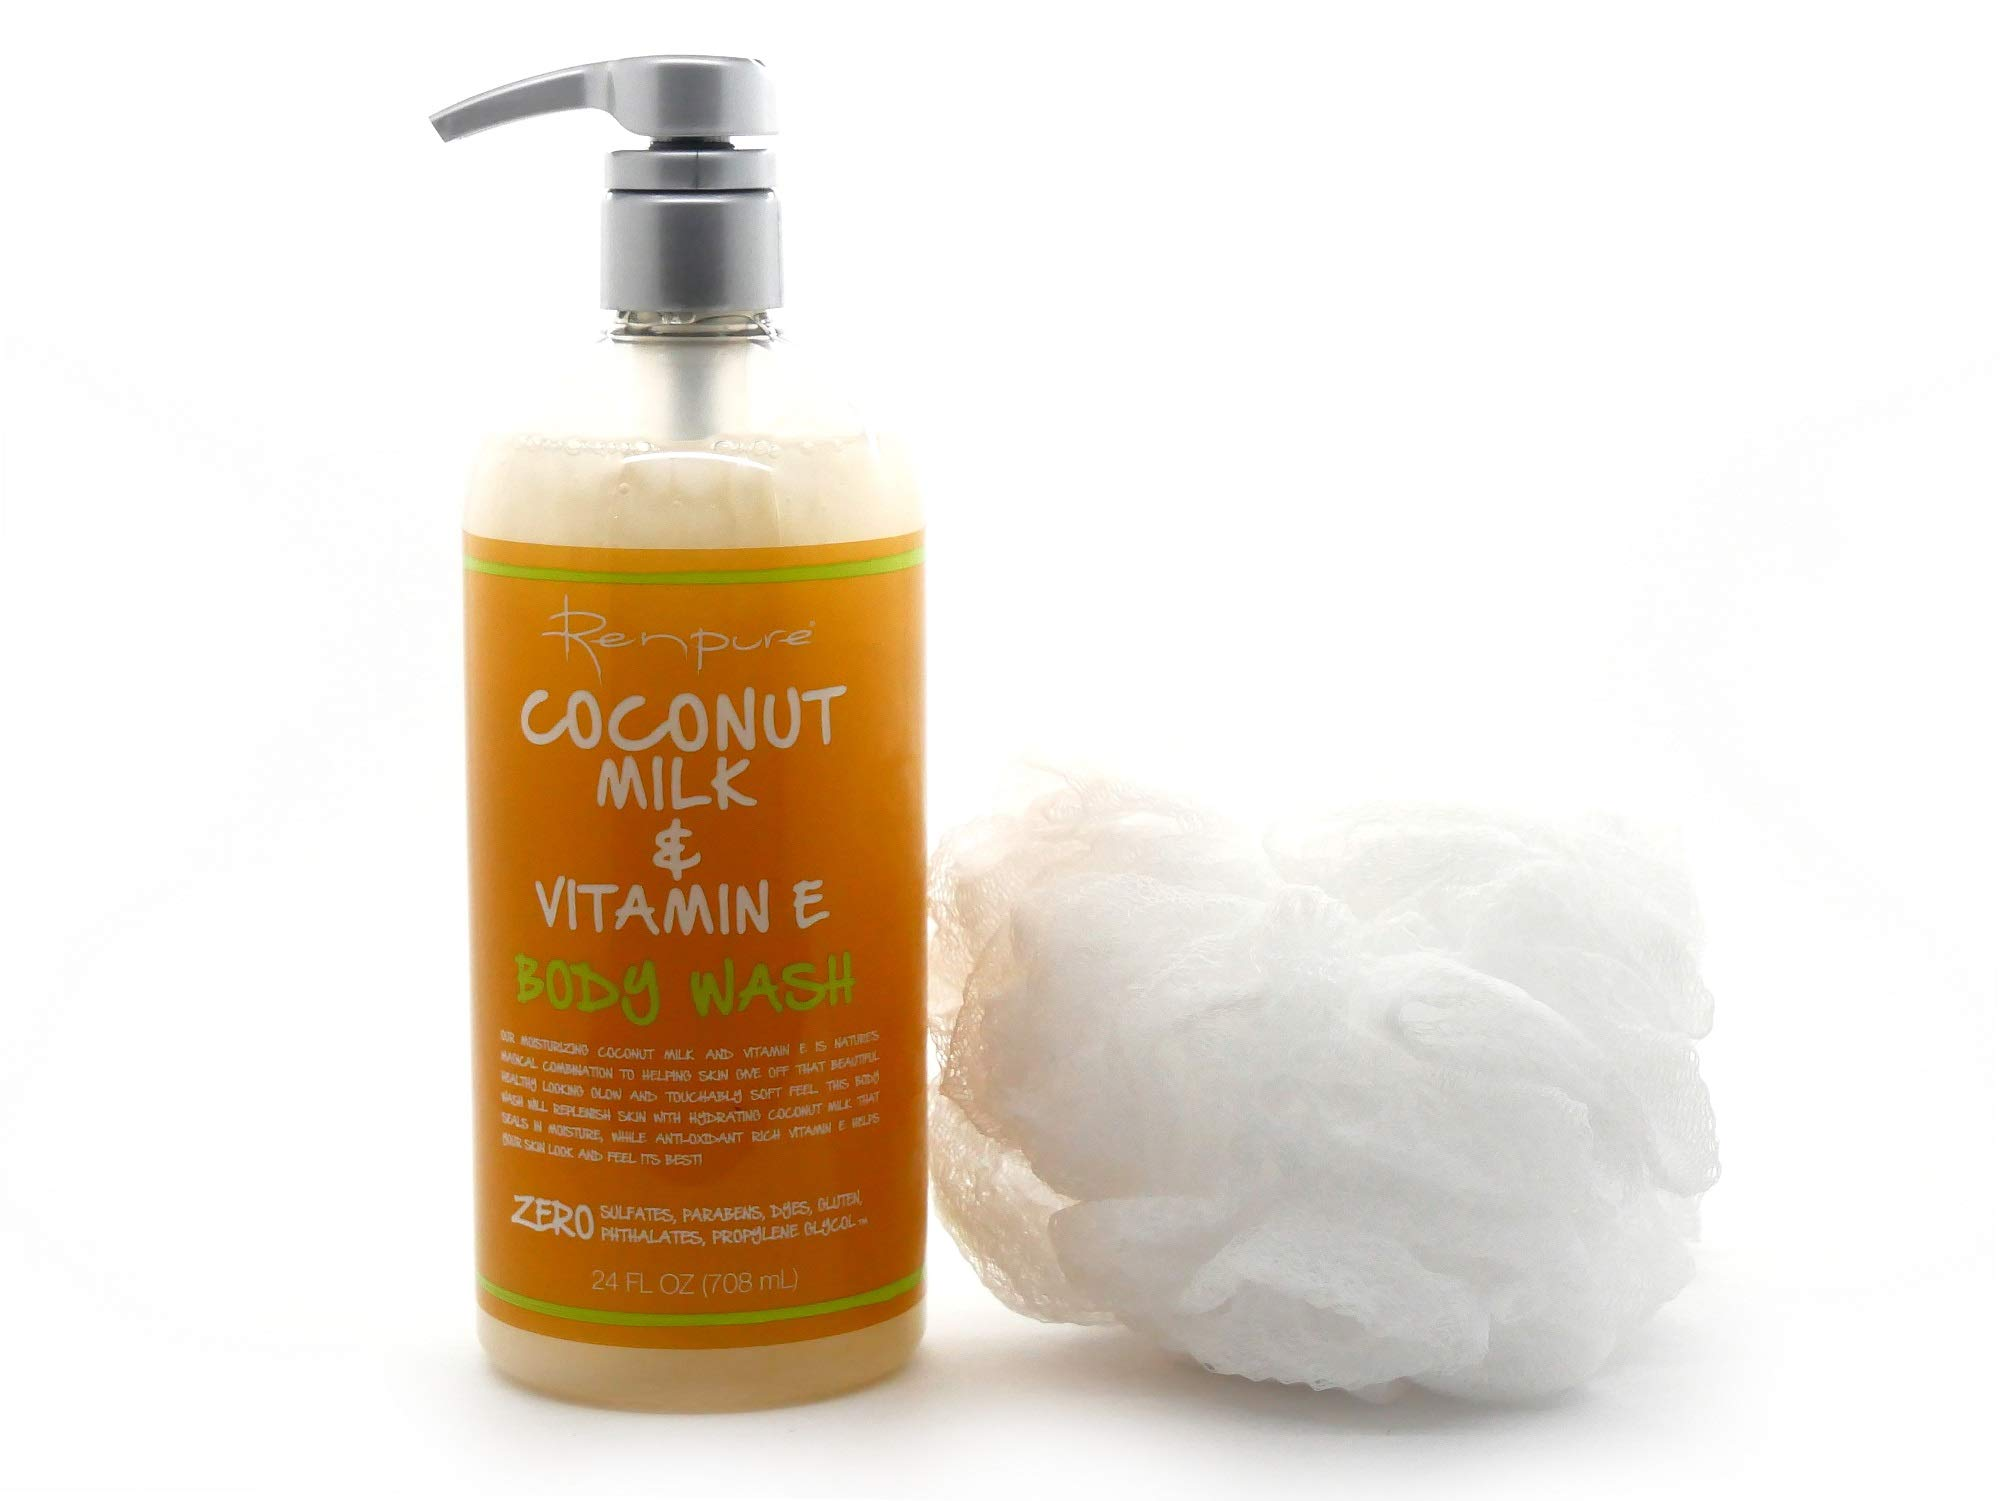 Renpure Coconut Milk & Vitamin E Body Wash! Bundle of Body Wash and Bath Pouf! Soothing Complimentary Set! by RENPURE